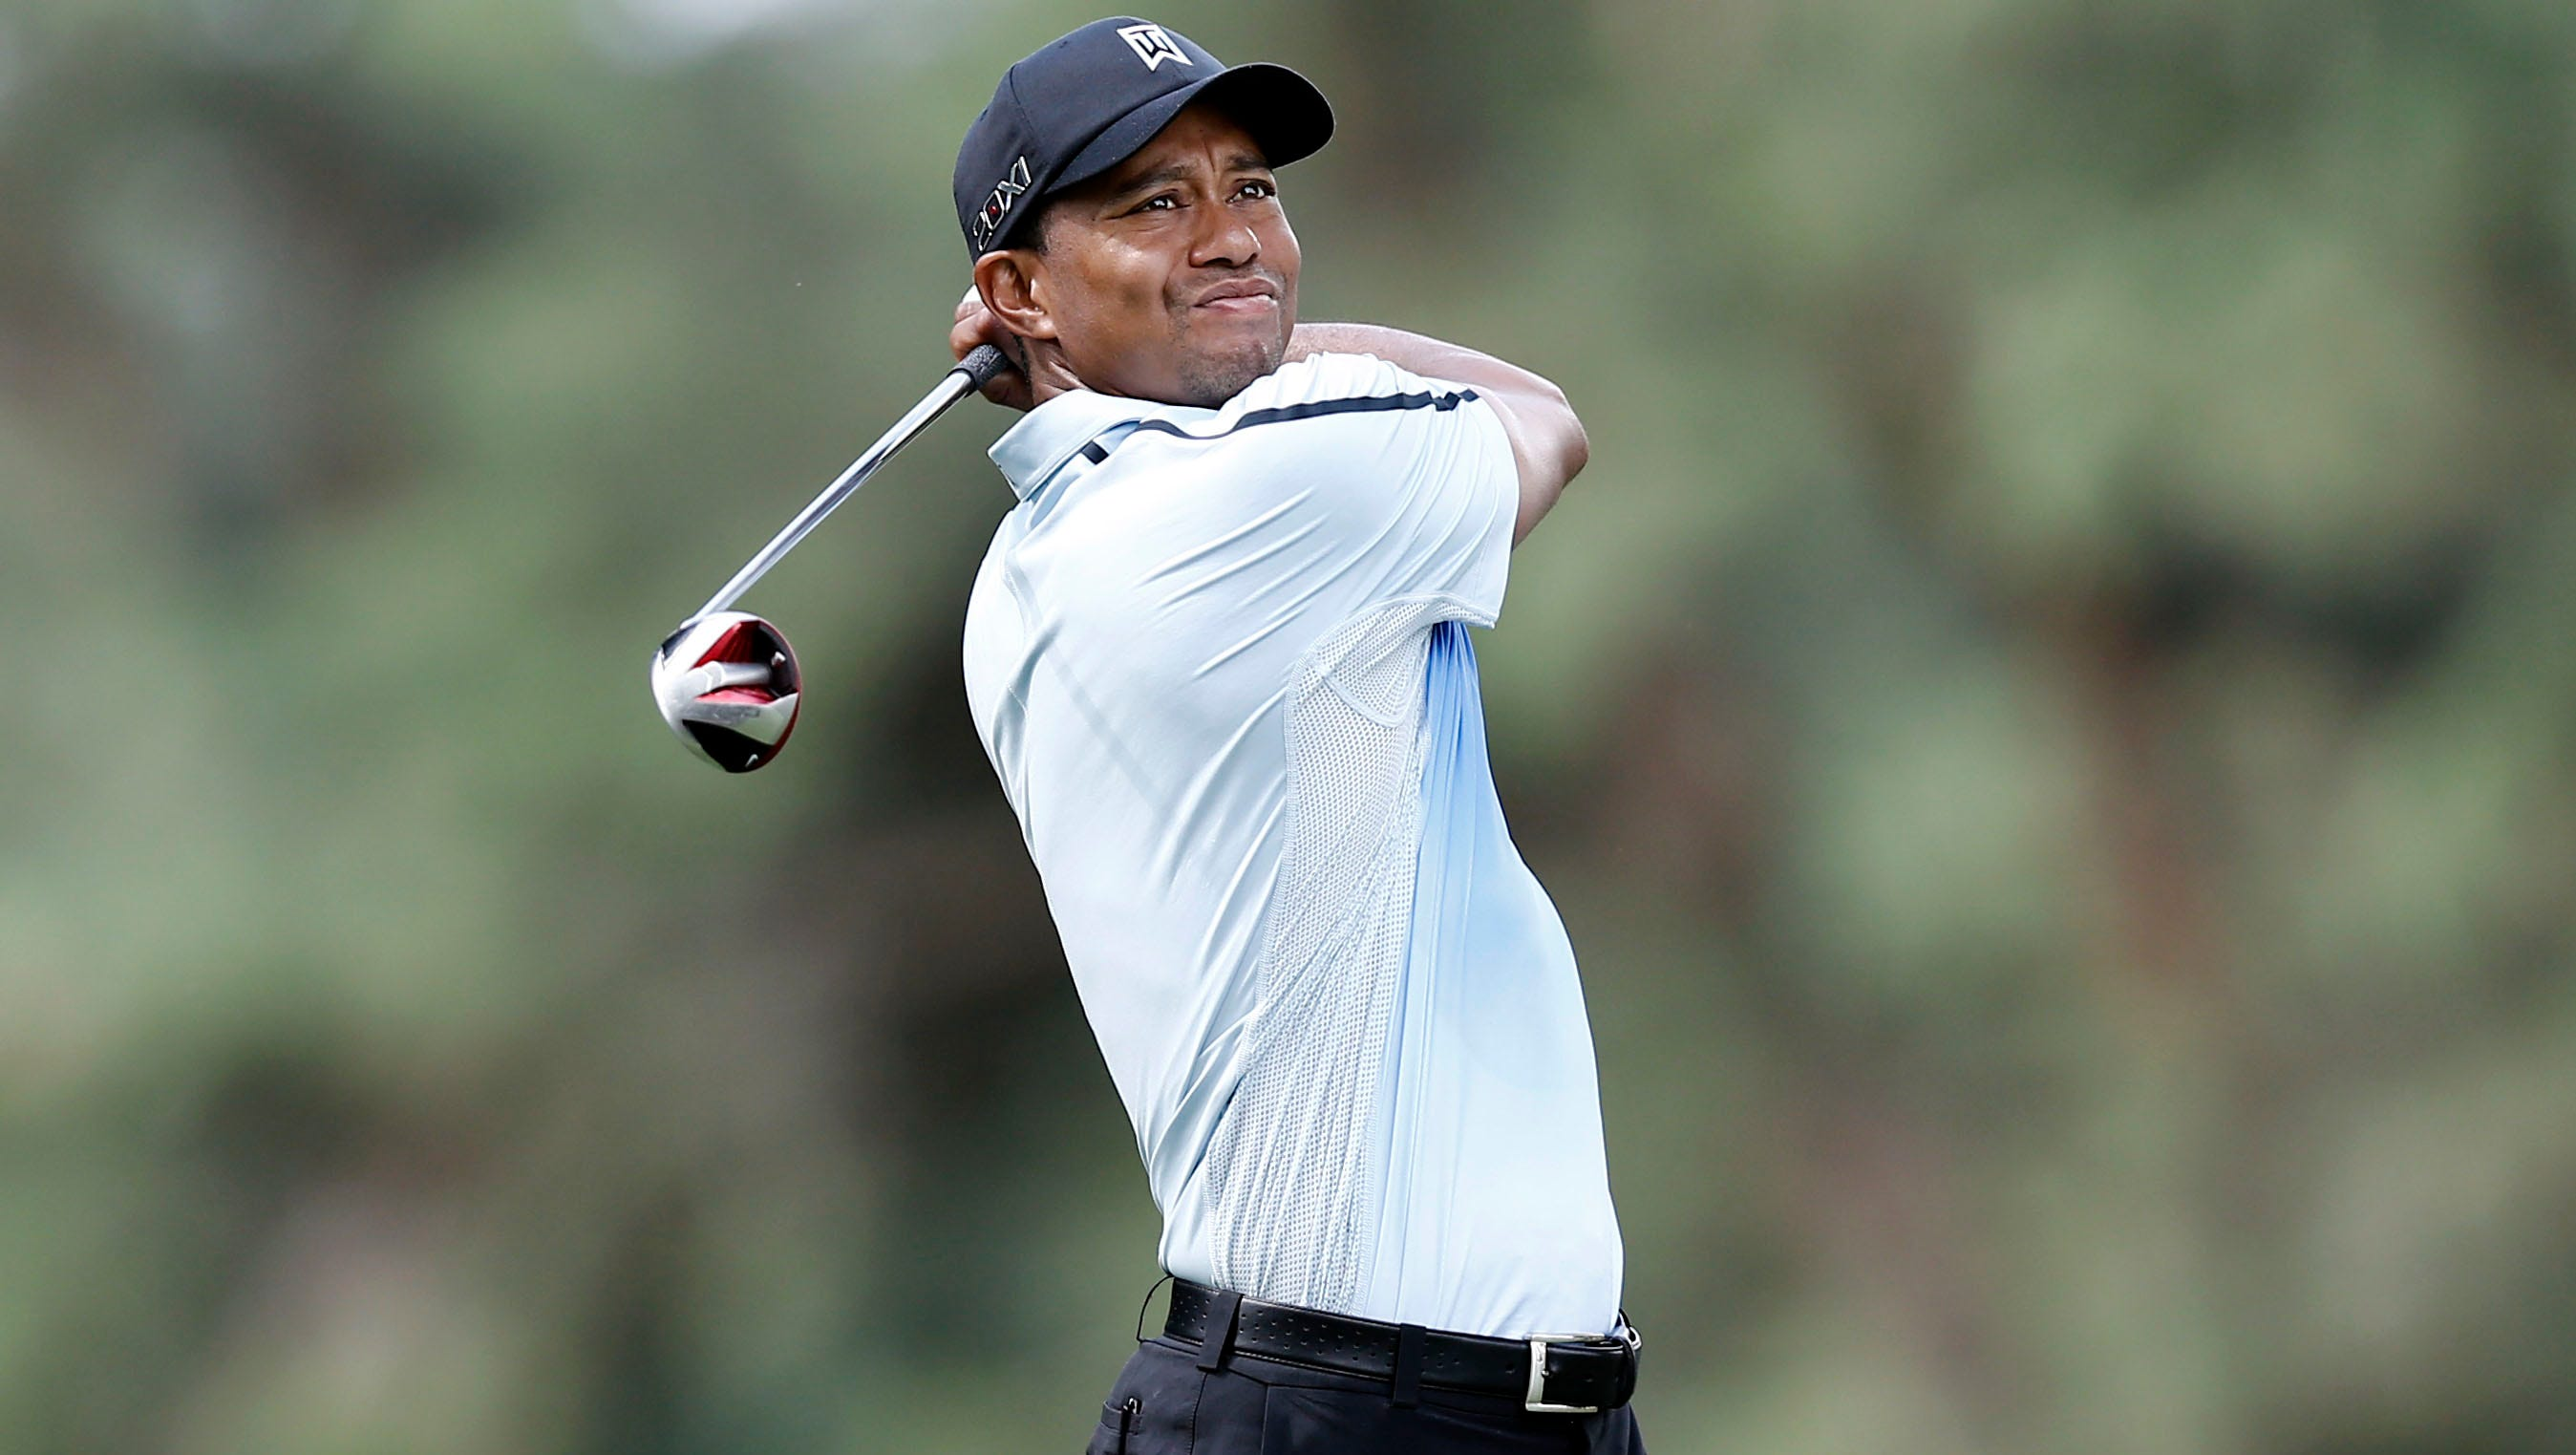 Tiger Woods tees off on the 18th hole.